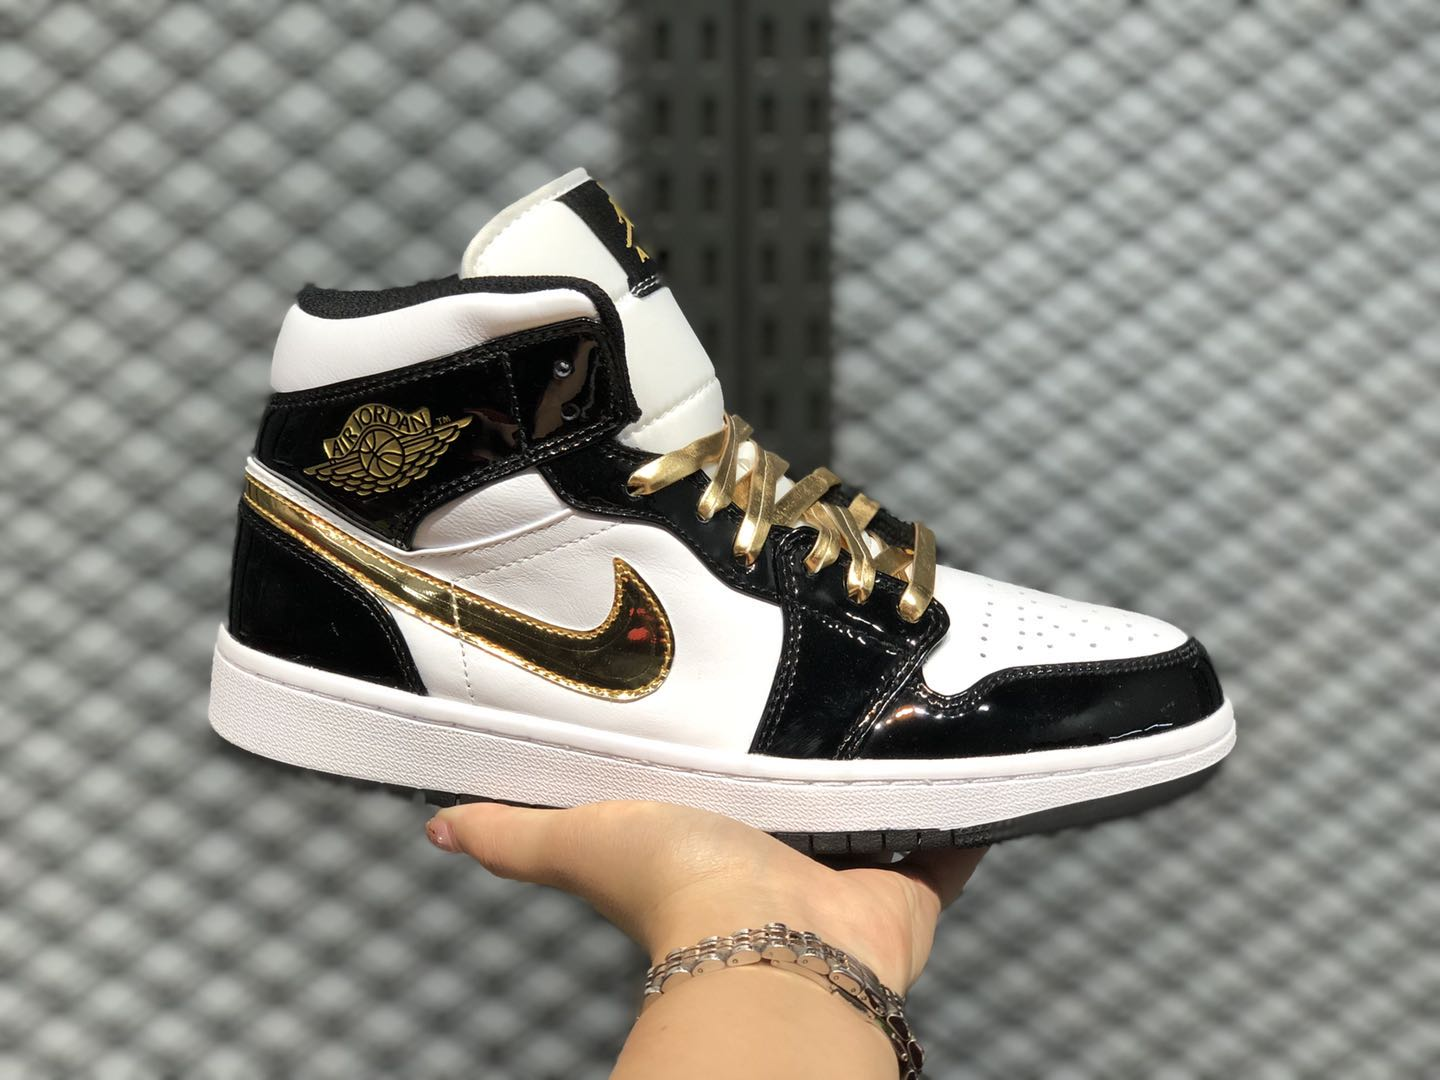 nike air bella tr black and gold dress code Mid Black Metallic Gold White 852542-007 For Sale